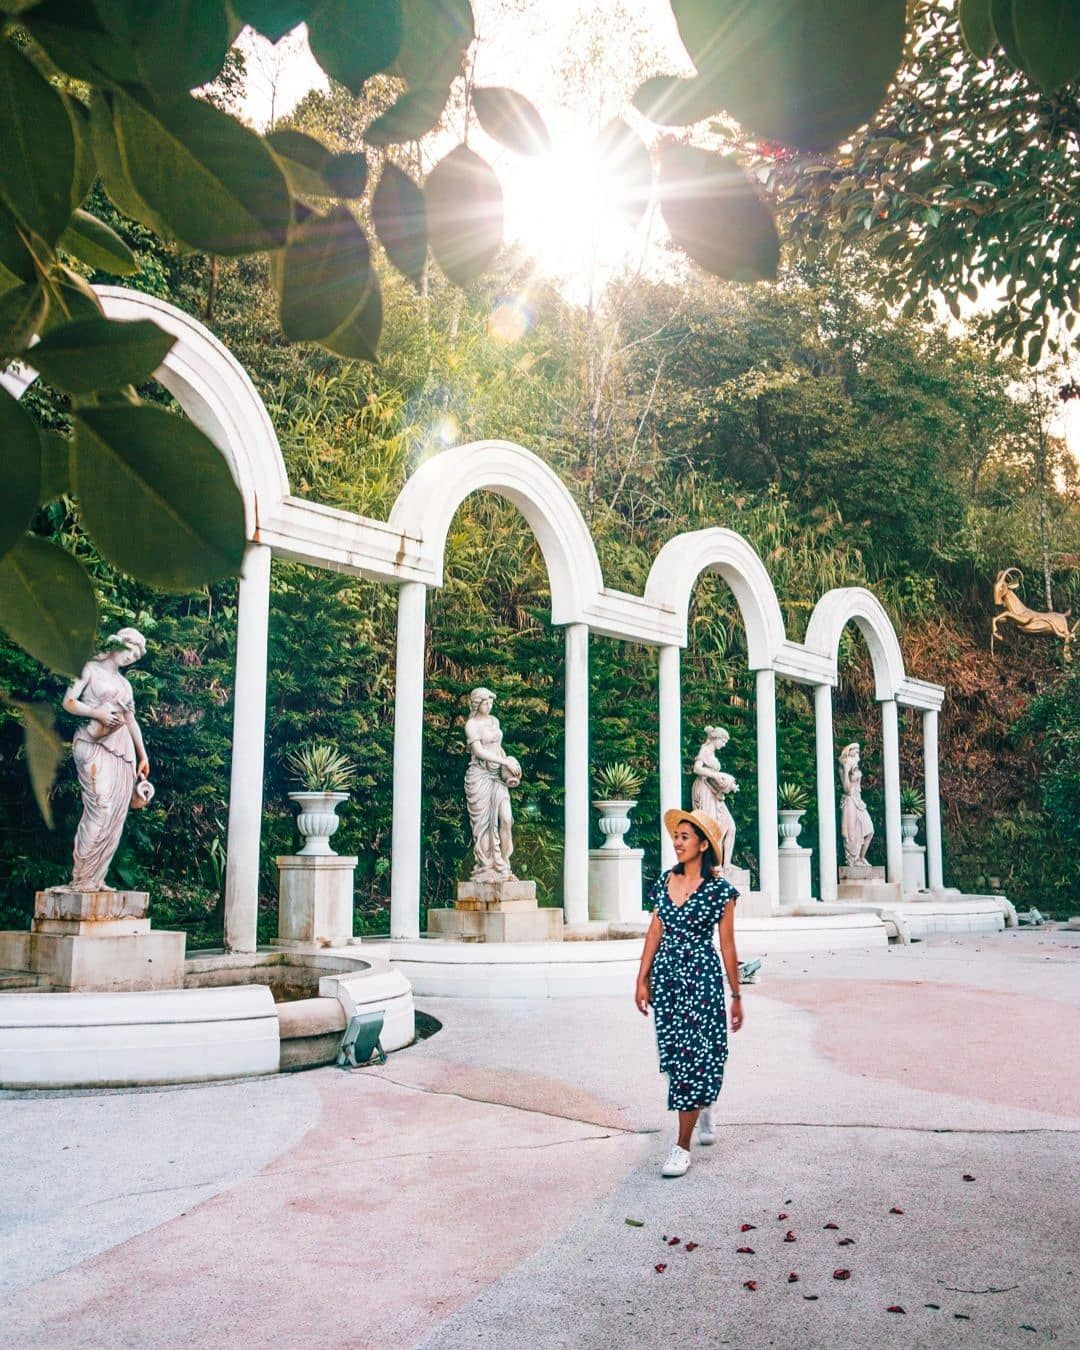 Stumbled upon a greek garden and thought I saw someone I knew but she never responded when I asked 'Hey! Istatue??' Guess she wasn't who I… #greekstatue